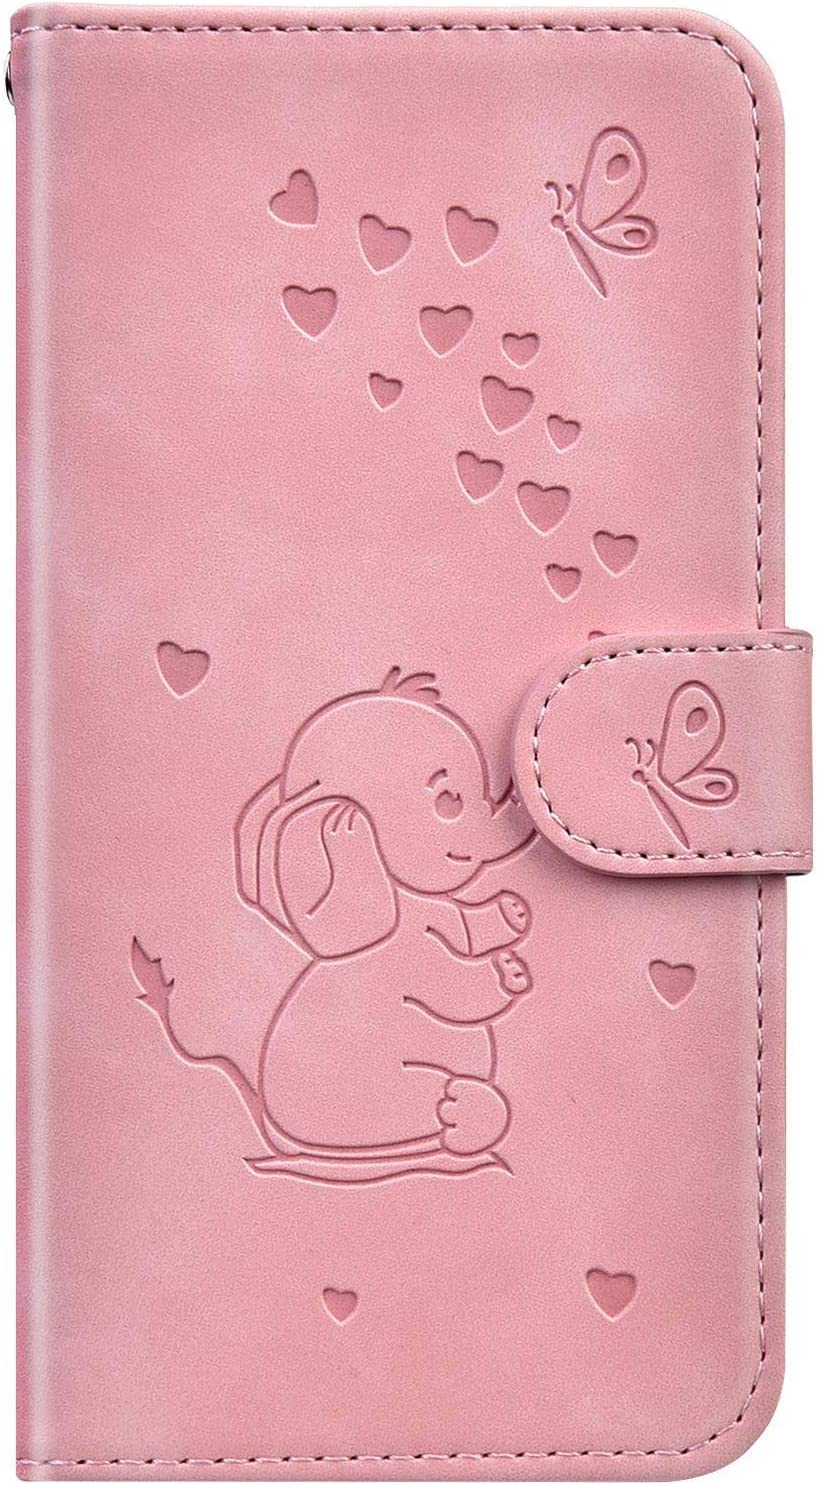 JAWSEU Compatible with Samsung Galaxy Note 9 Flip Case Cute Elephant Butterfly Design PU Leather Wallet Folio Stand Cover Front and Back Full Body Magnetic Closure Case with Card Holders,Pink